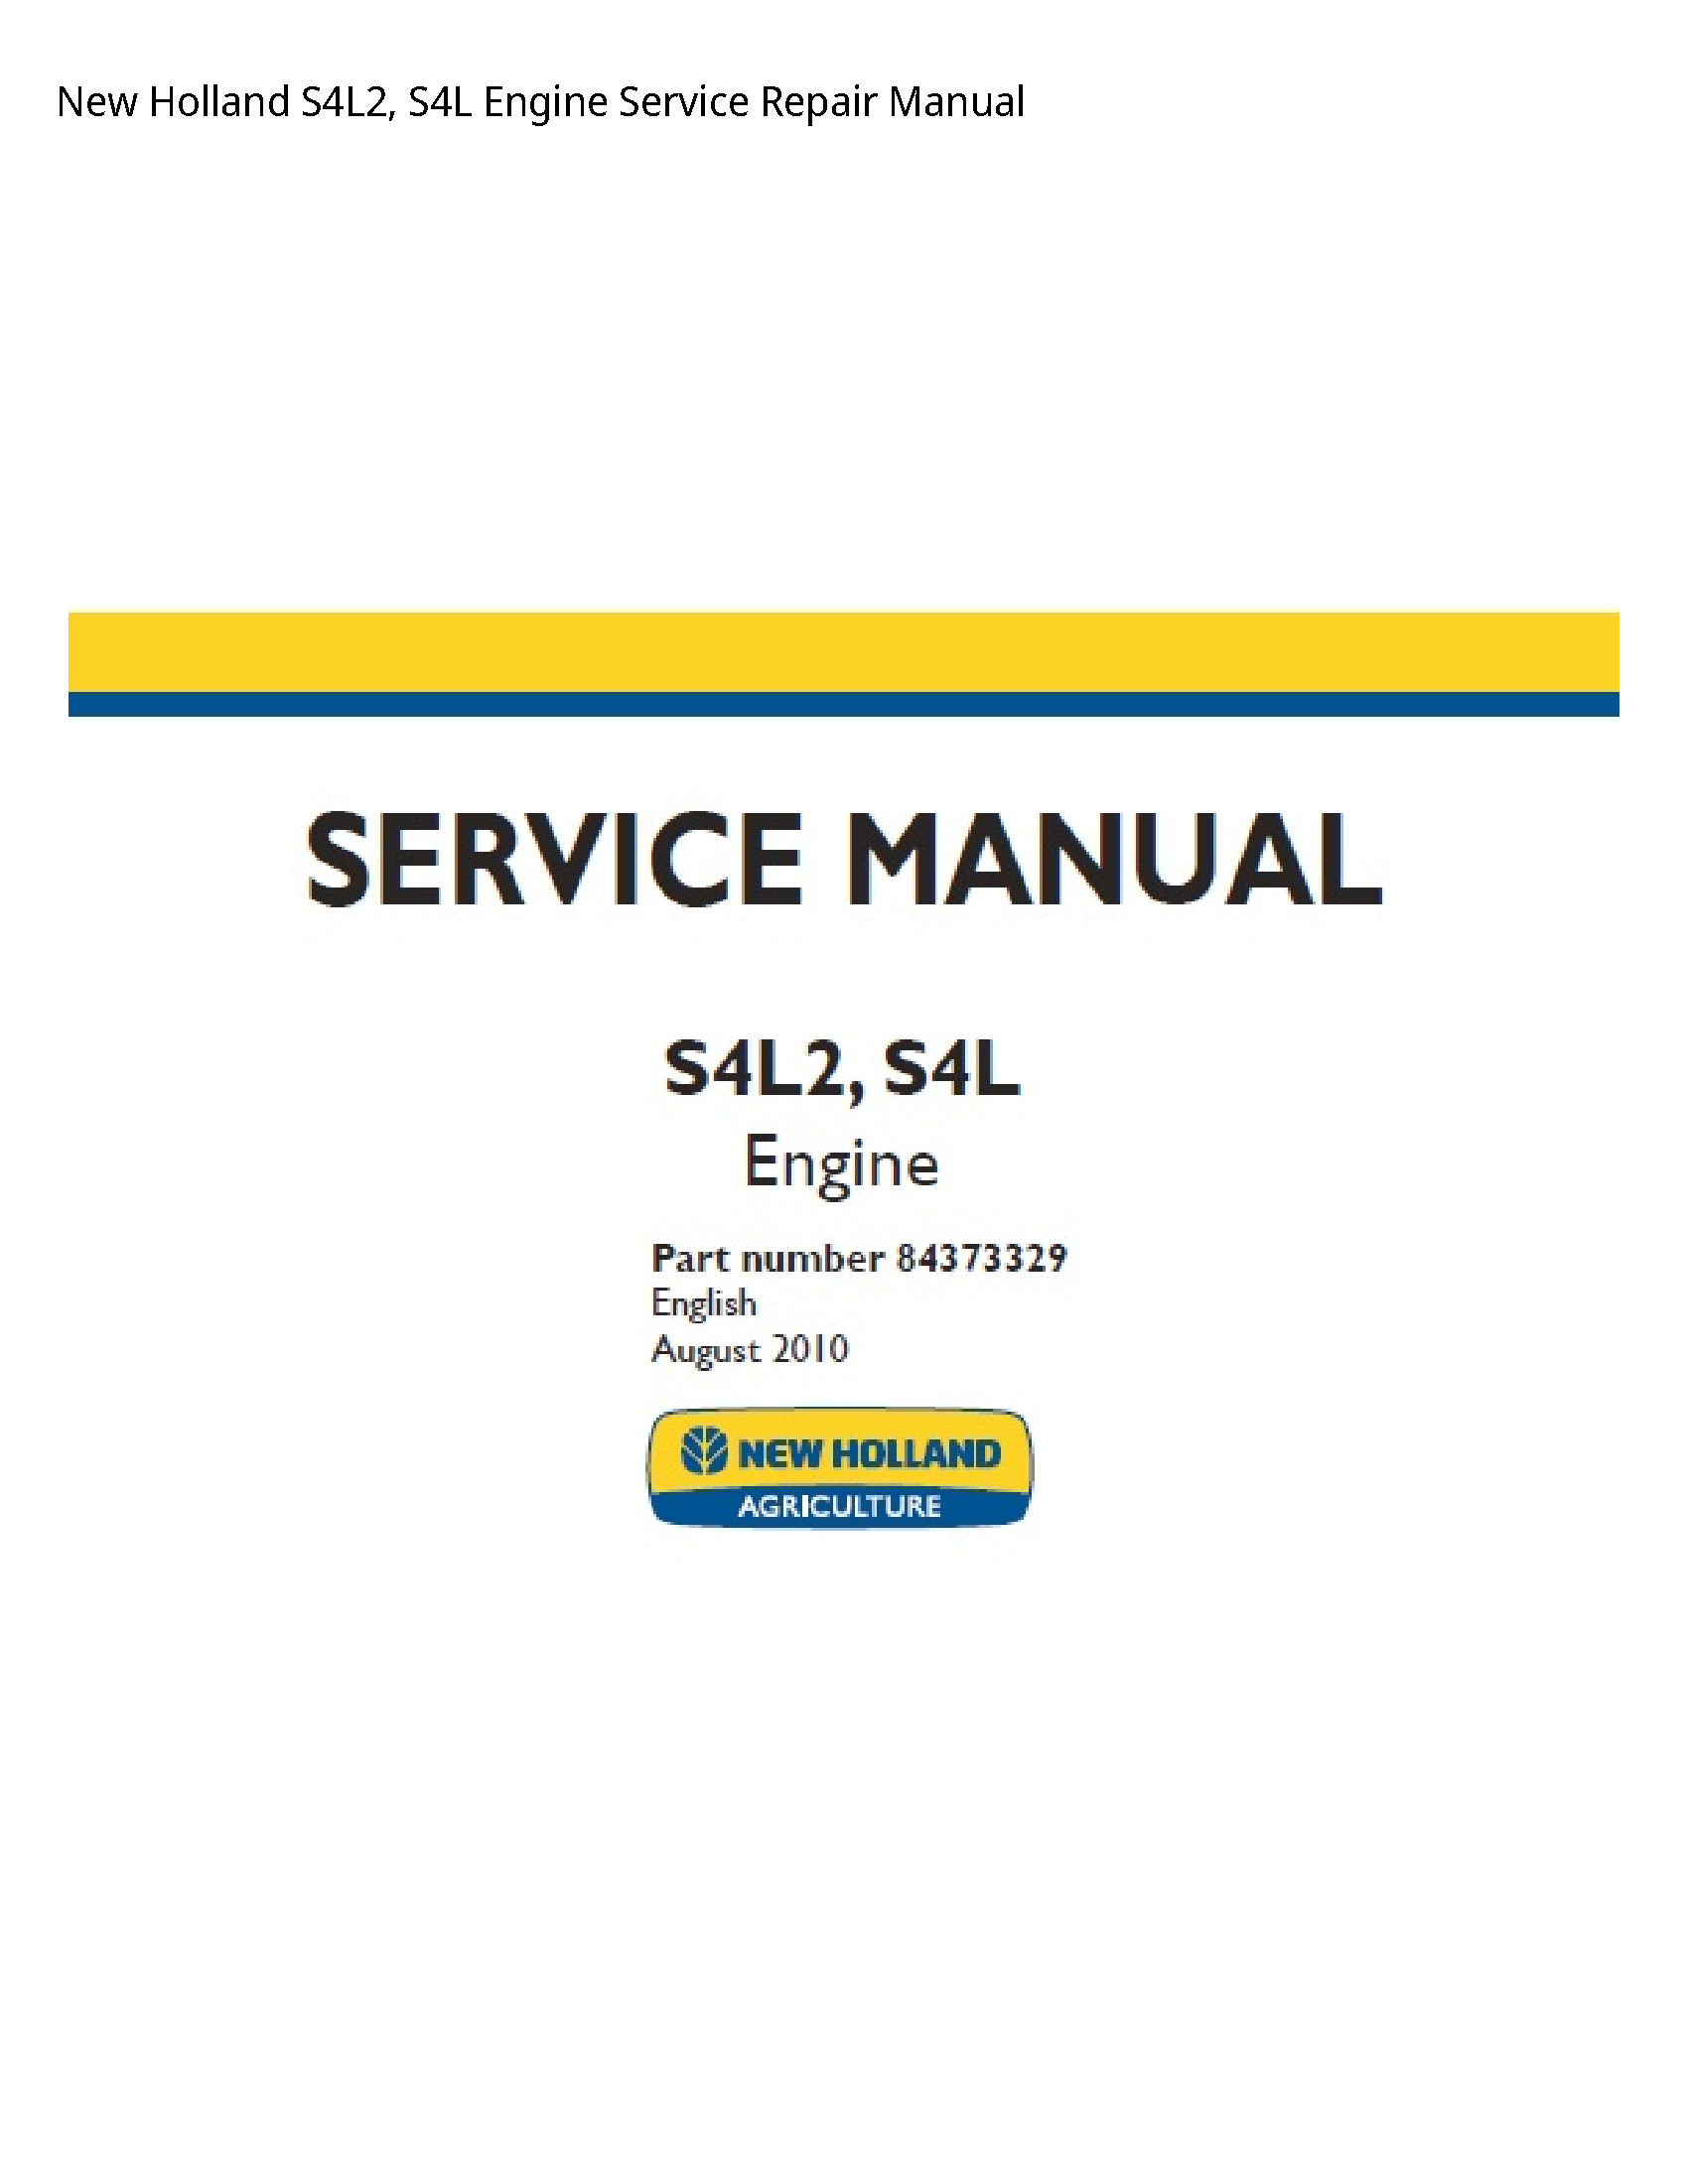 New Holland S4L2 Engine manual